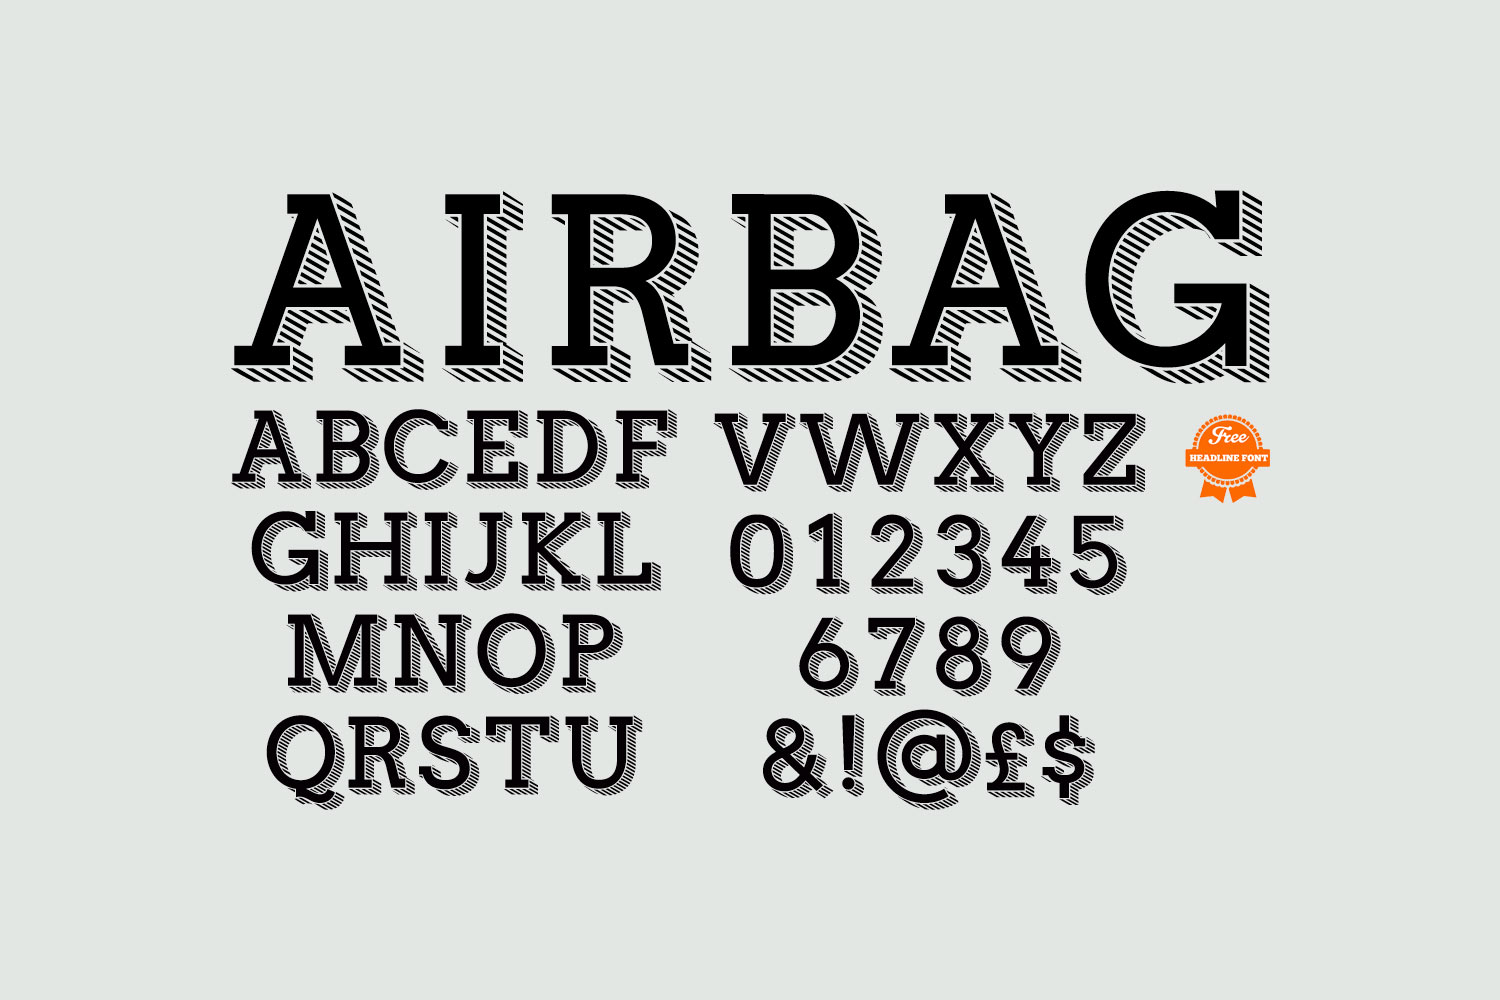 47. airbag